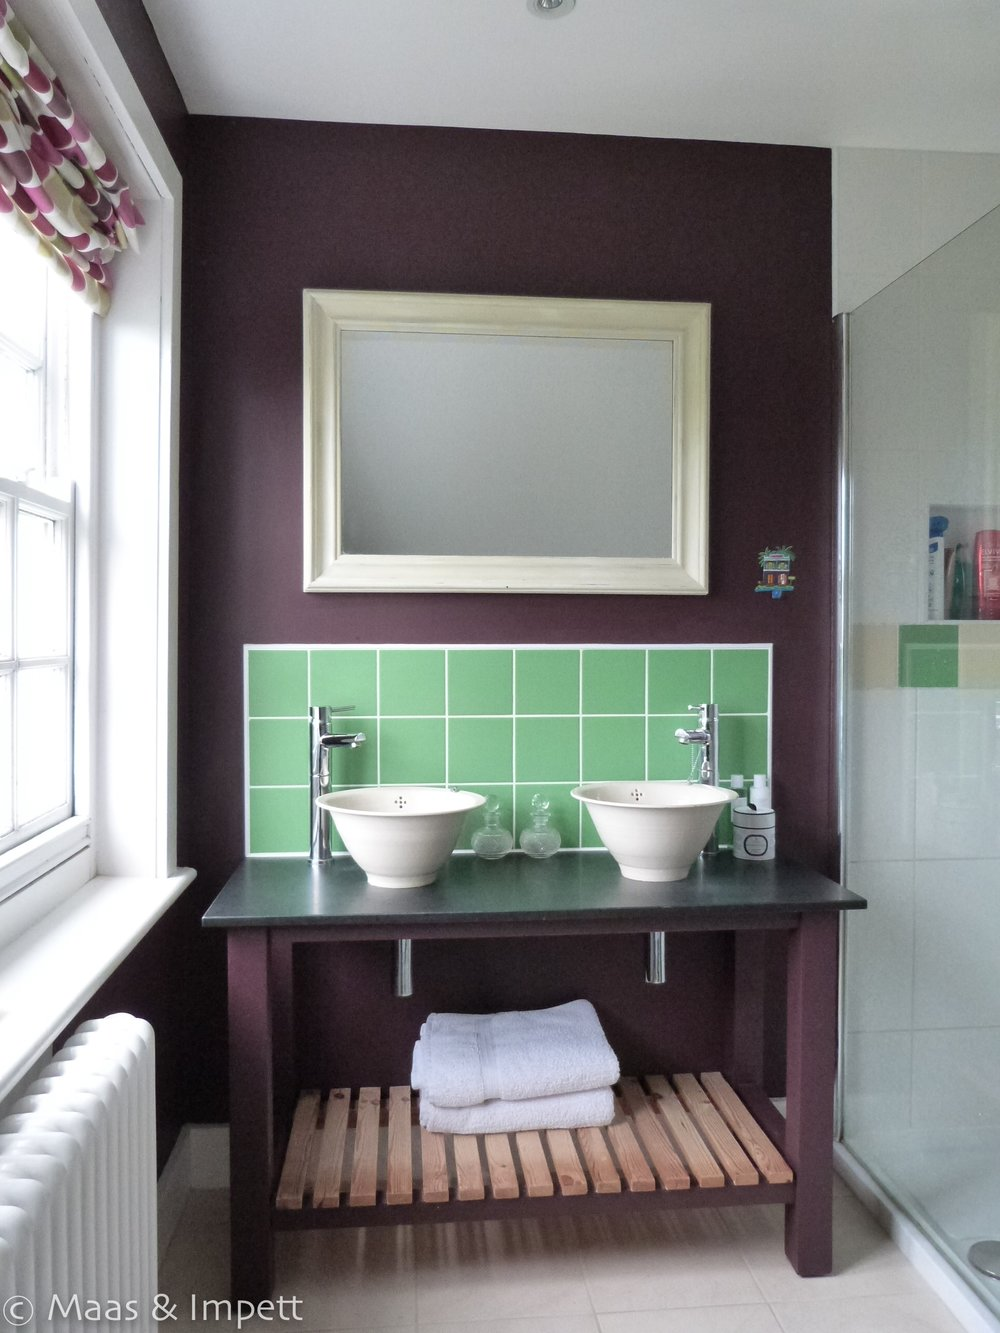 Washstand with ceramic sinks